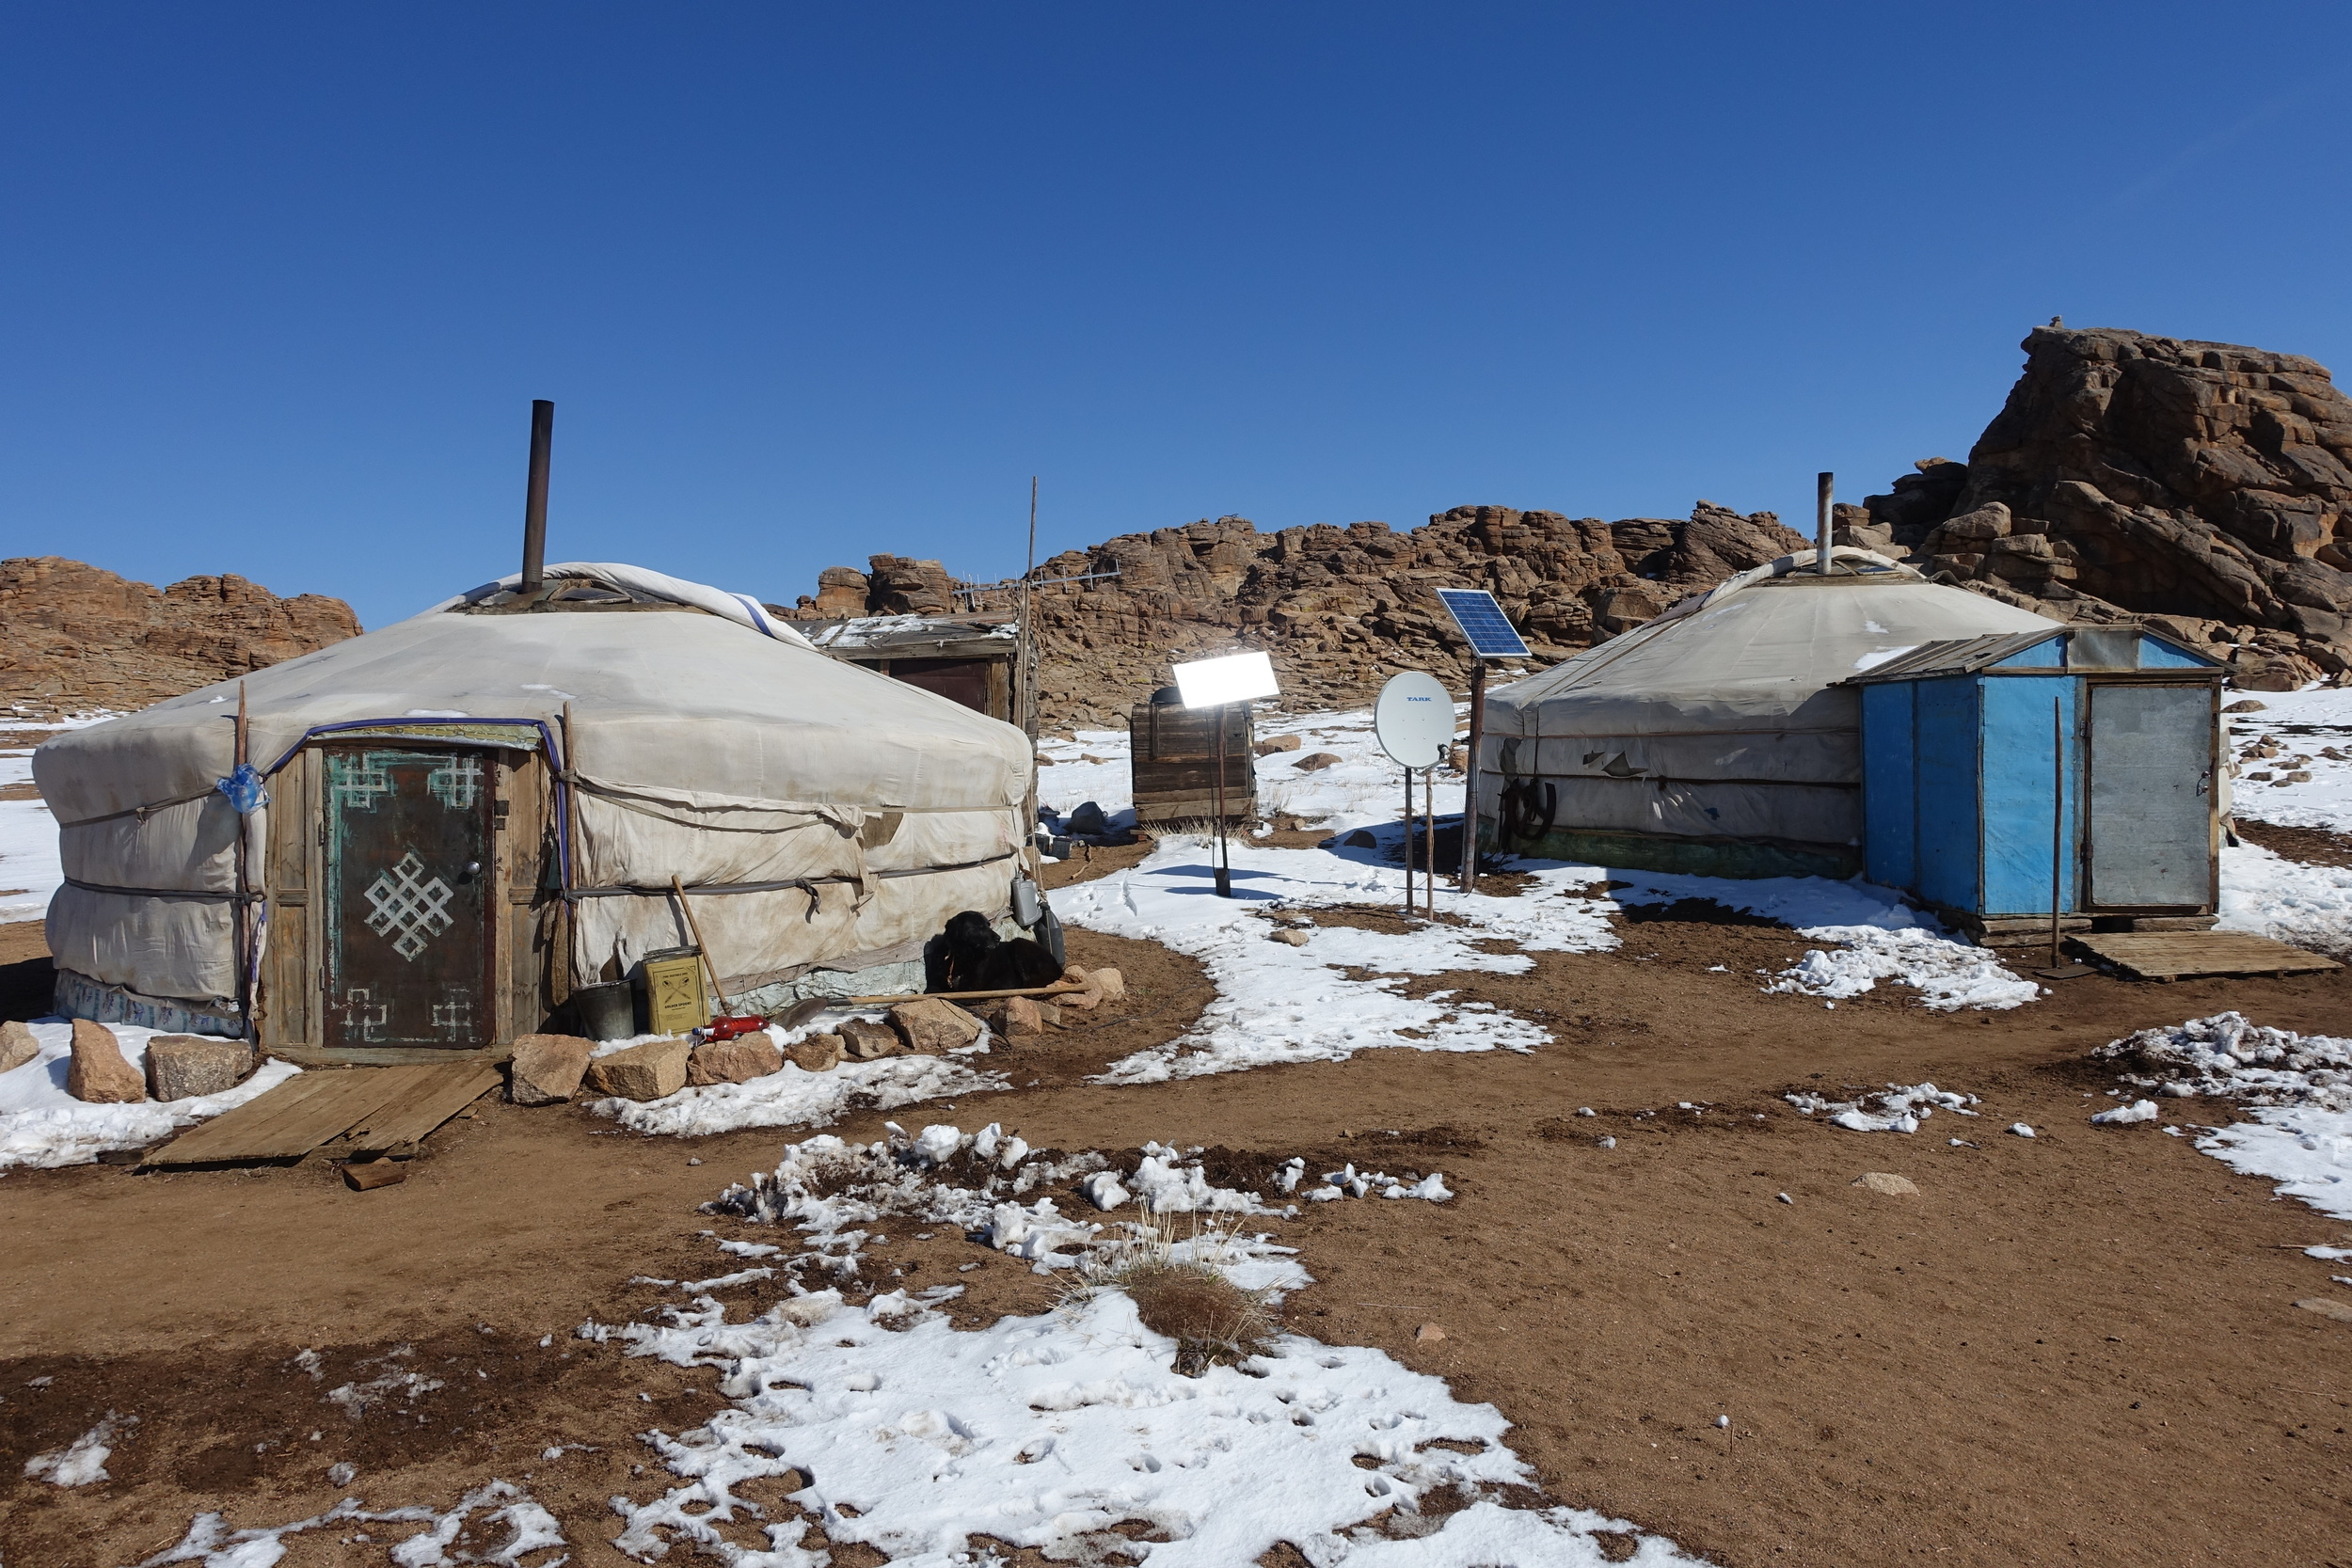 Building a second ger to host tourists allows nomadic families to increase their income. For tourists, this authentic type of accommodation gives a genuine experience of the Mongolian nomadic life.